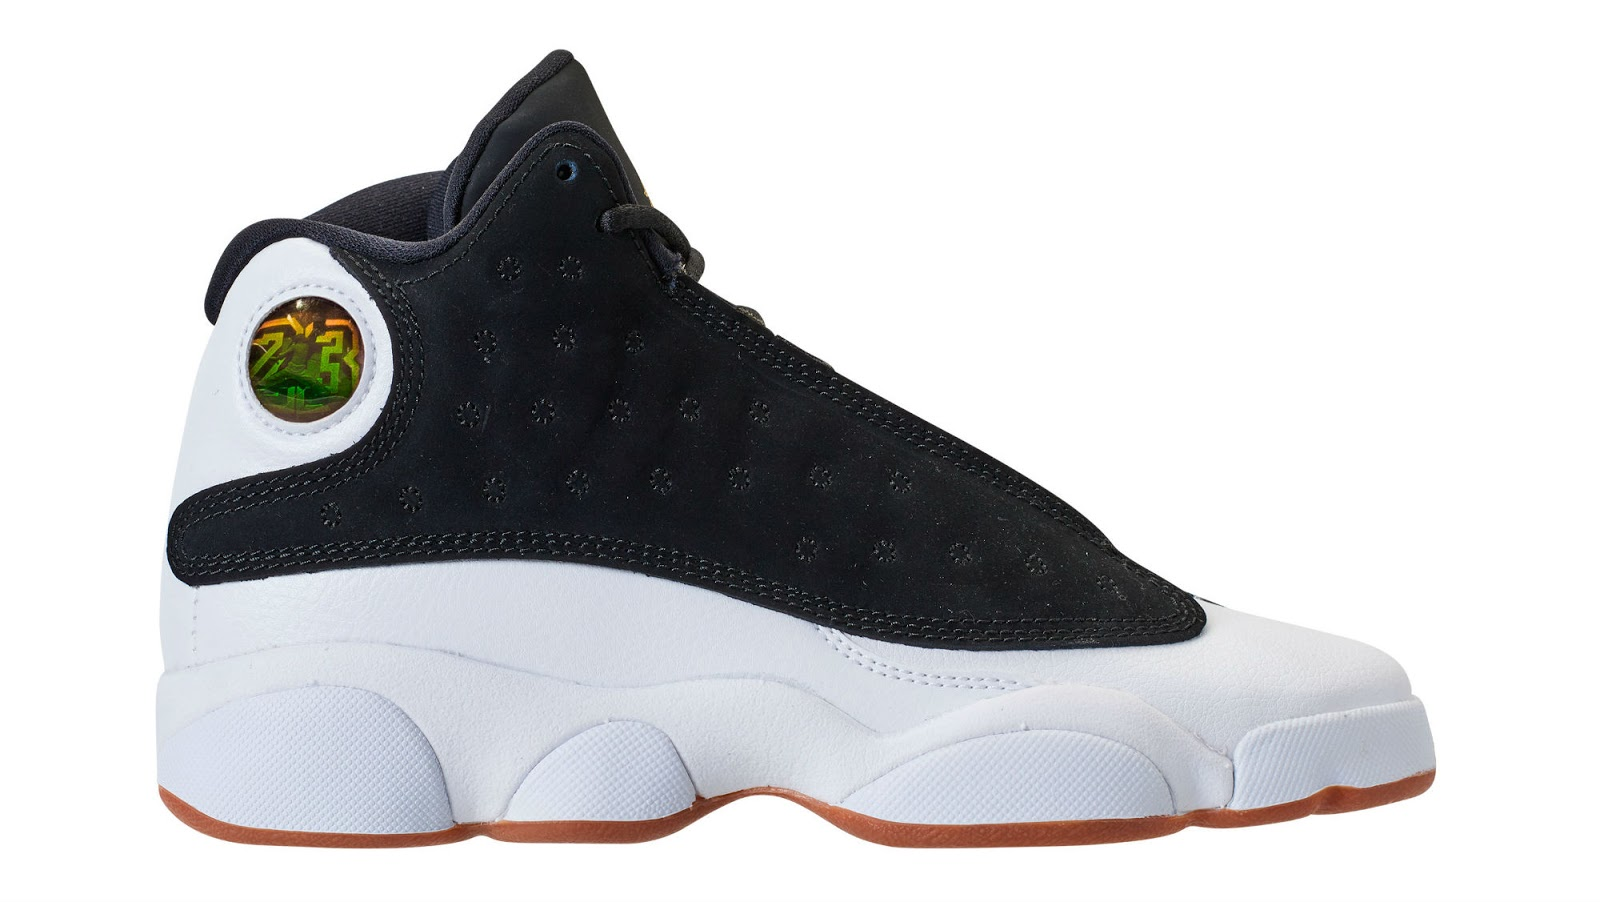 5e71d0d9078c Air Jordan 13 Retro GG Release Date  02 24 18. Color  Black Metallic  Gold-White-Gum Medium Brown Style    439358-021. Price   140